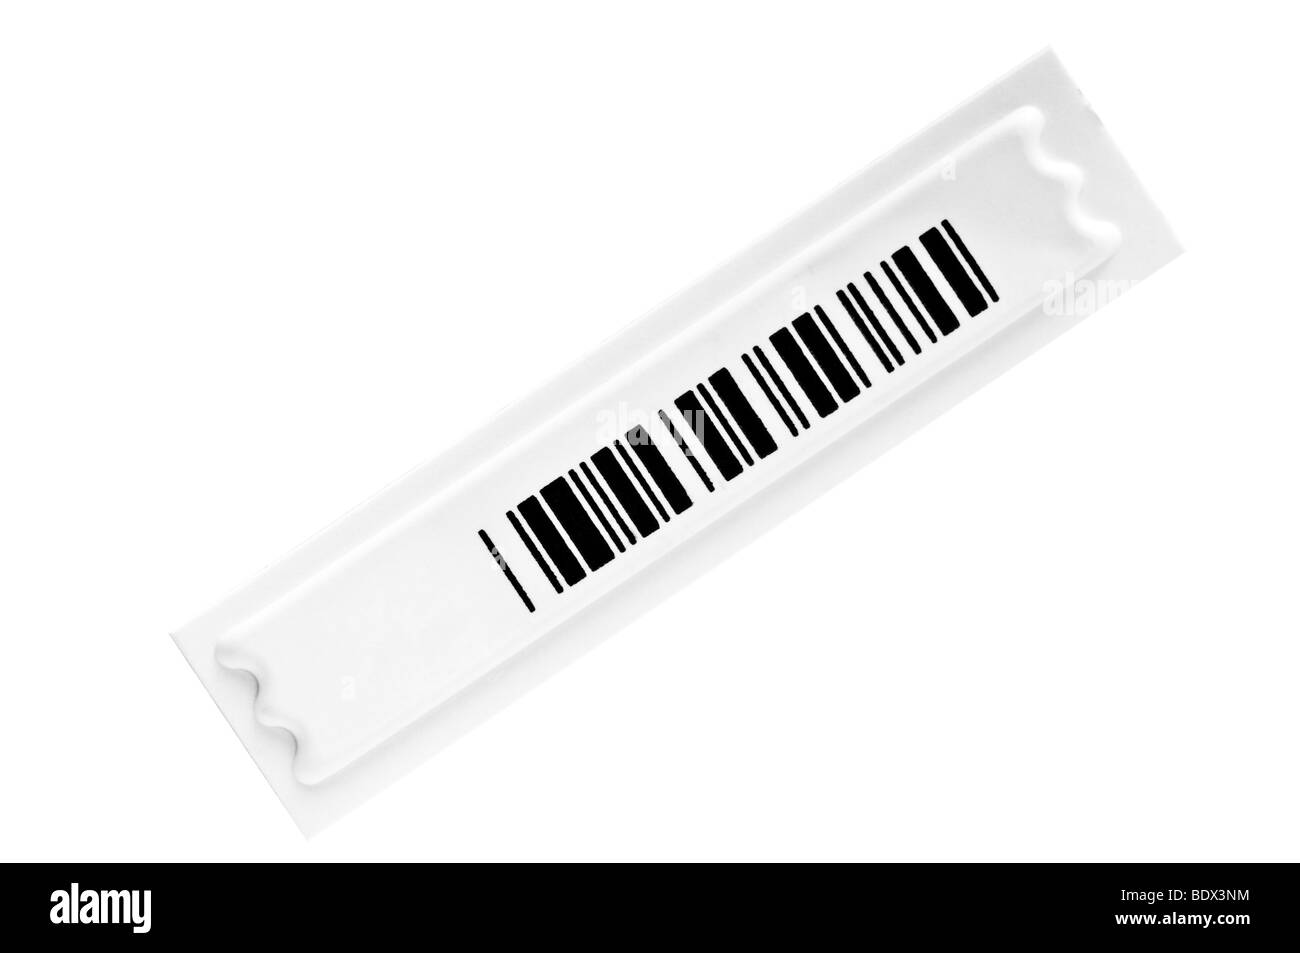 safety barcode lable isolated on white - Stock Image